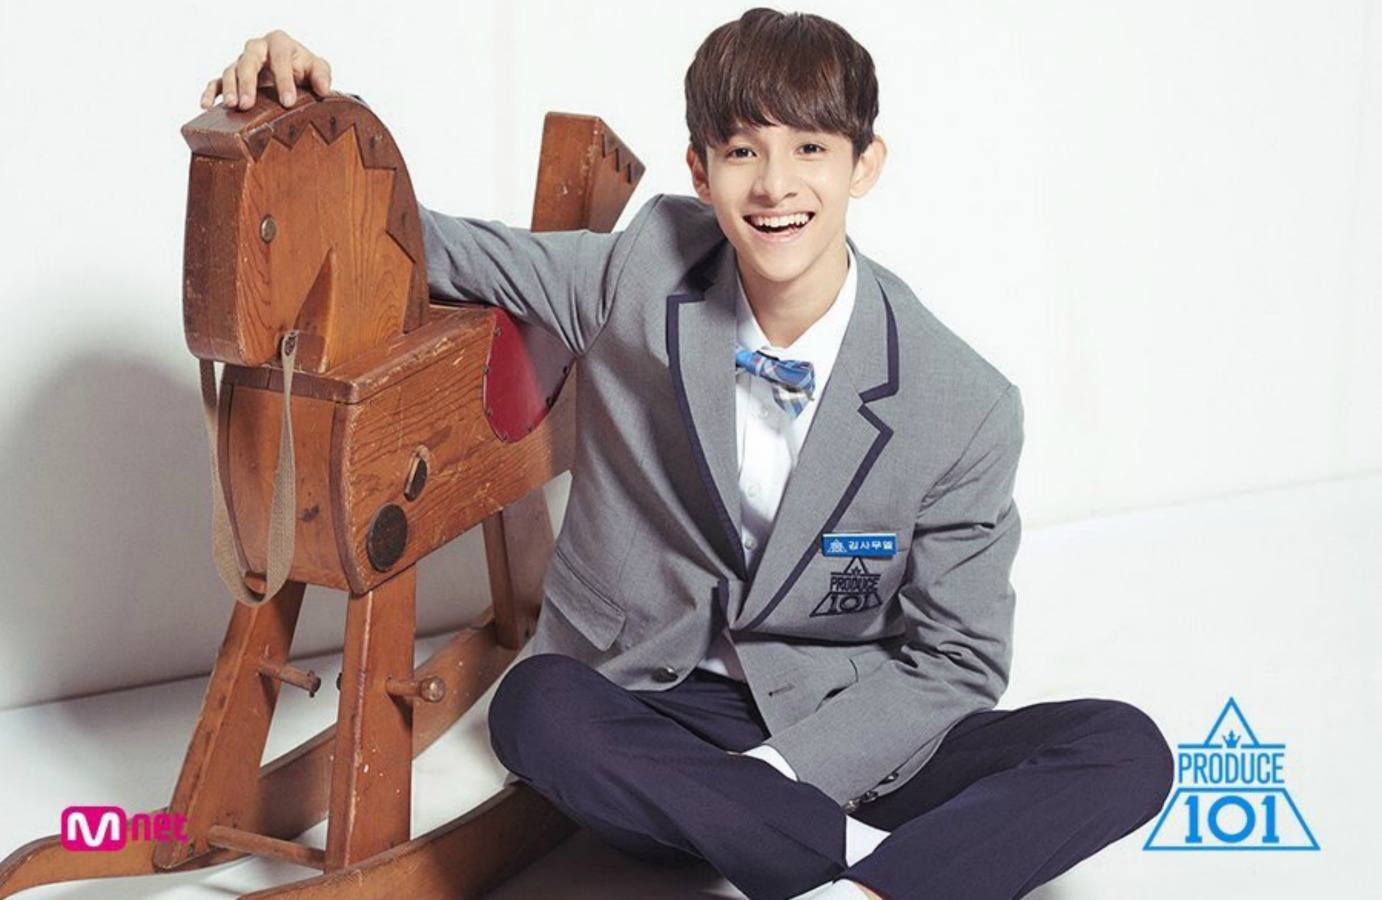 Produce 101 Samuel Is Banned From Taking Photos With Fans, So He Did This Instead